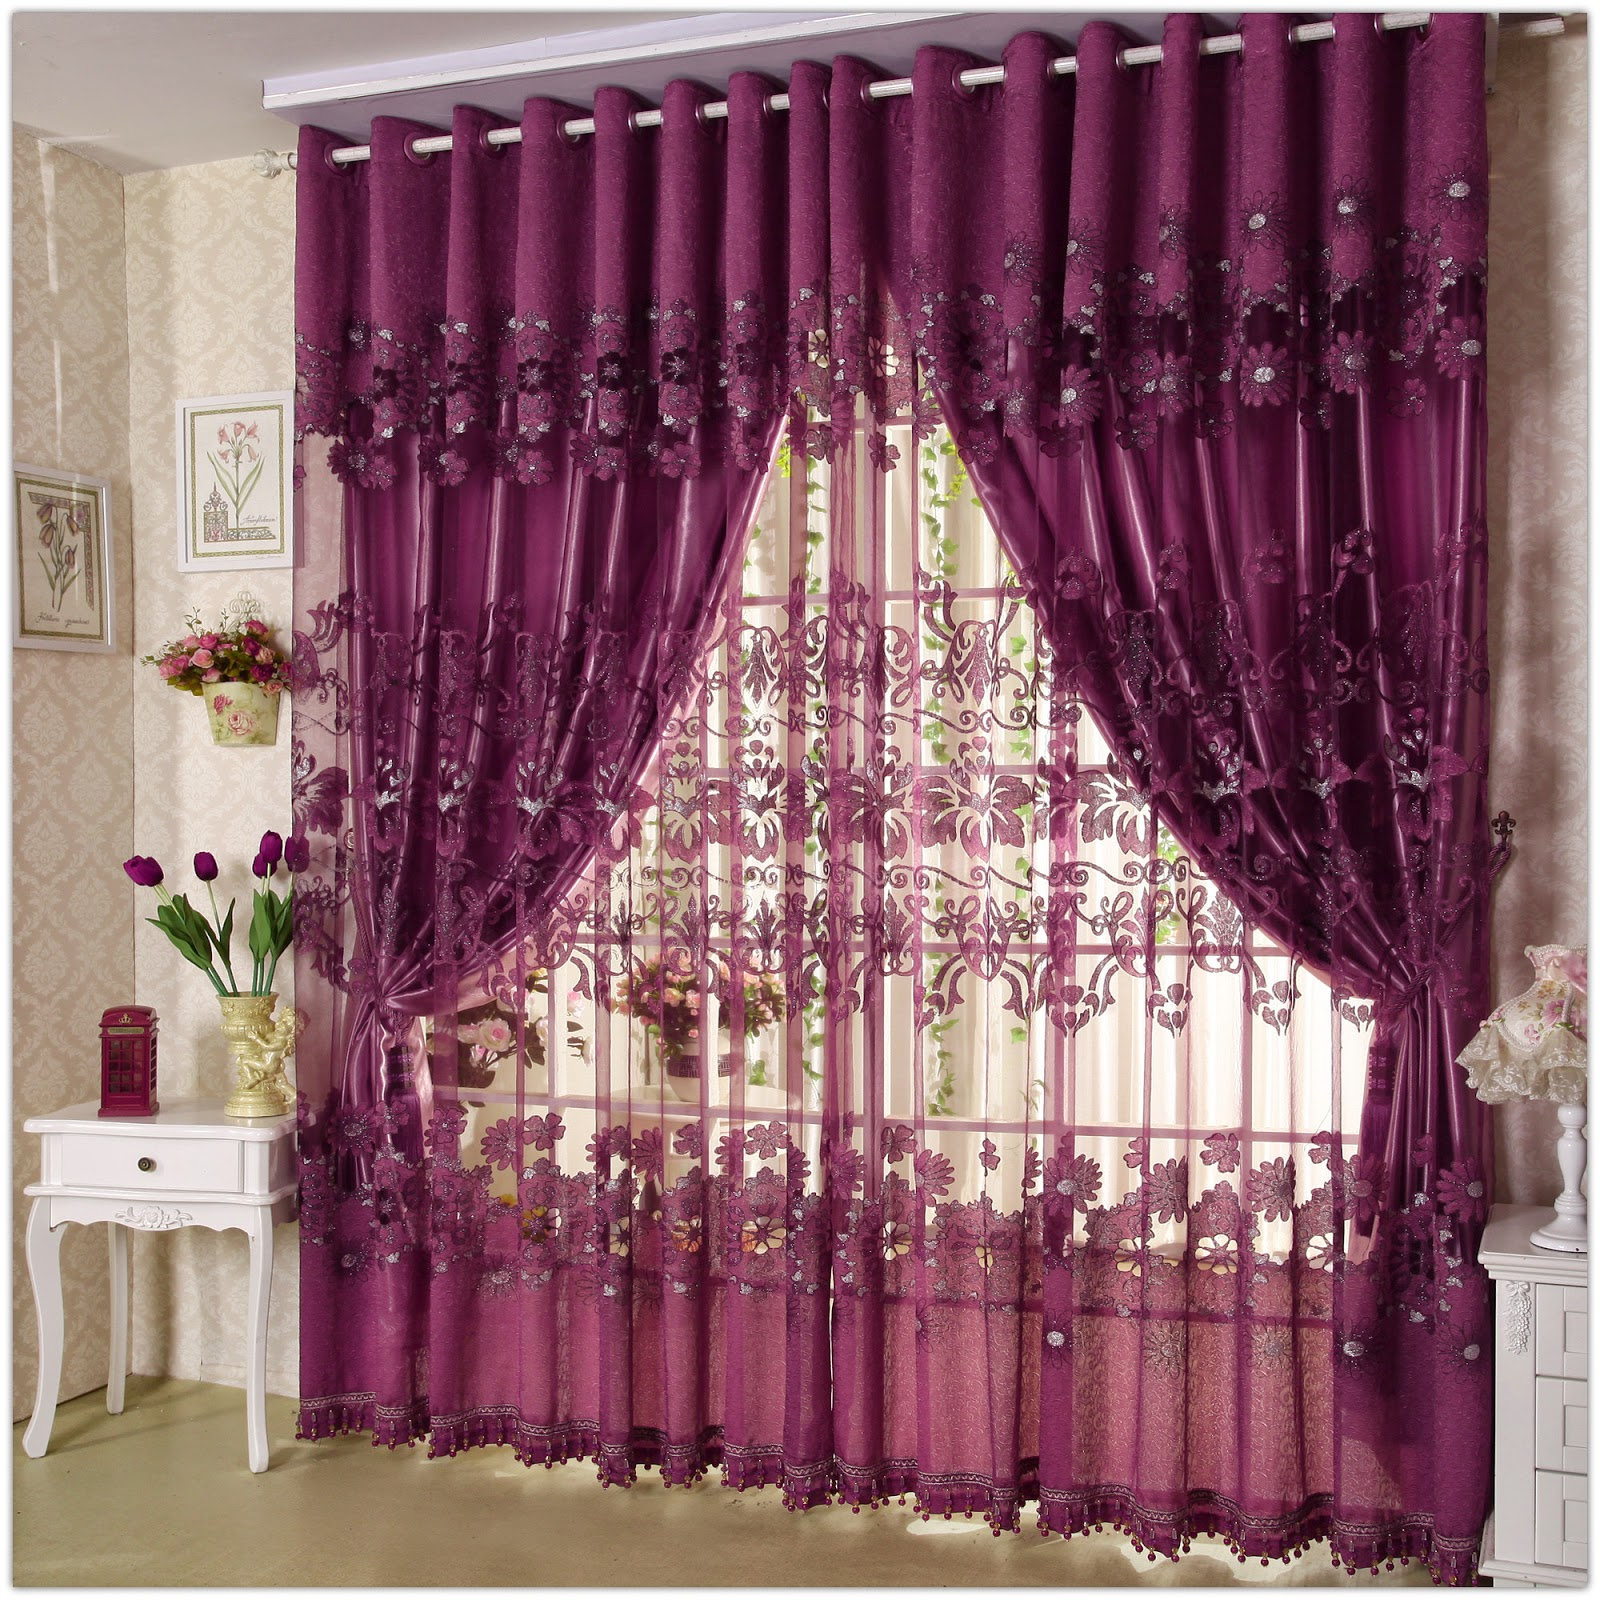 window curtain design house window curtain designs home curtains fascinating living room three DEBKRGB